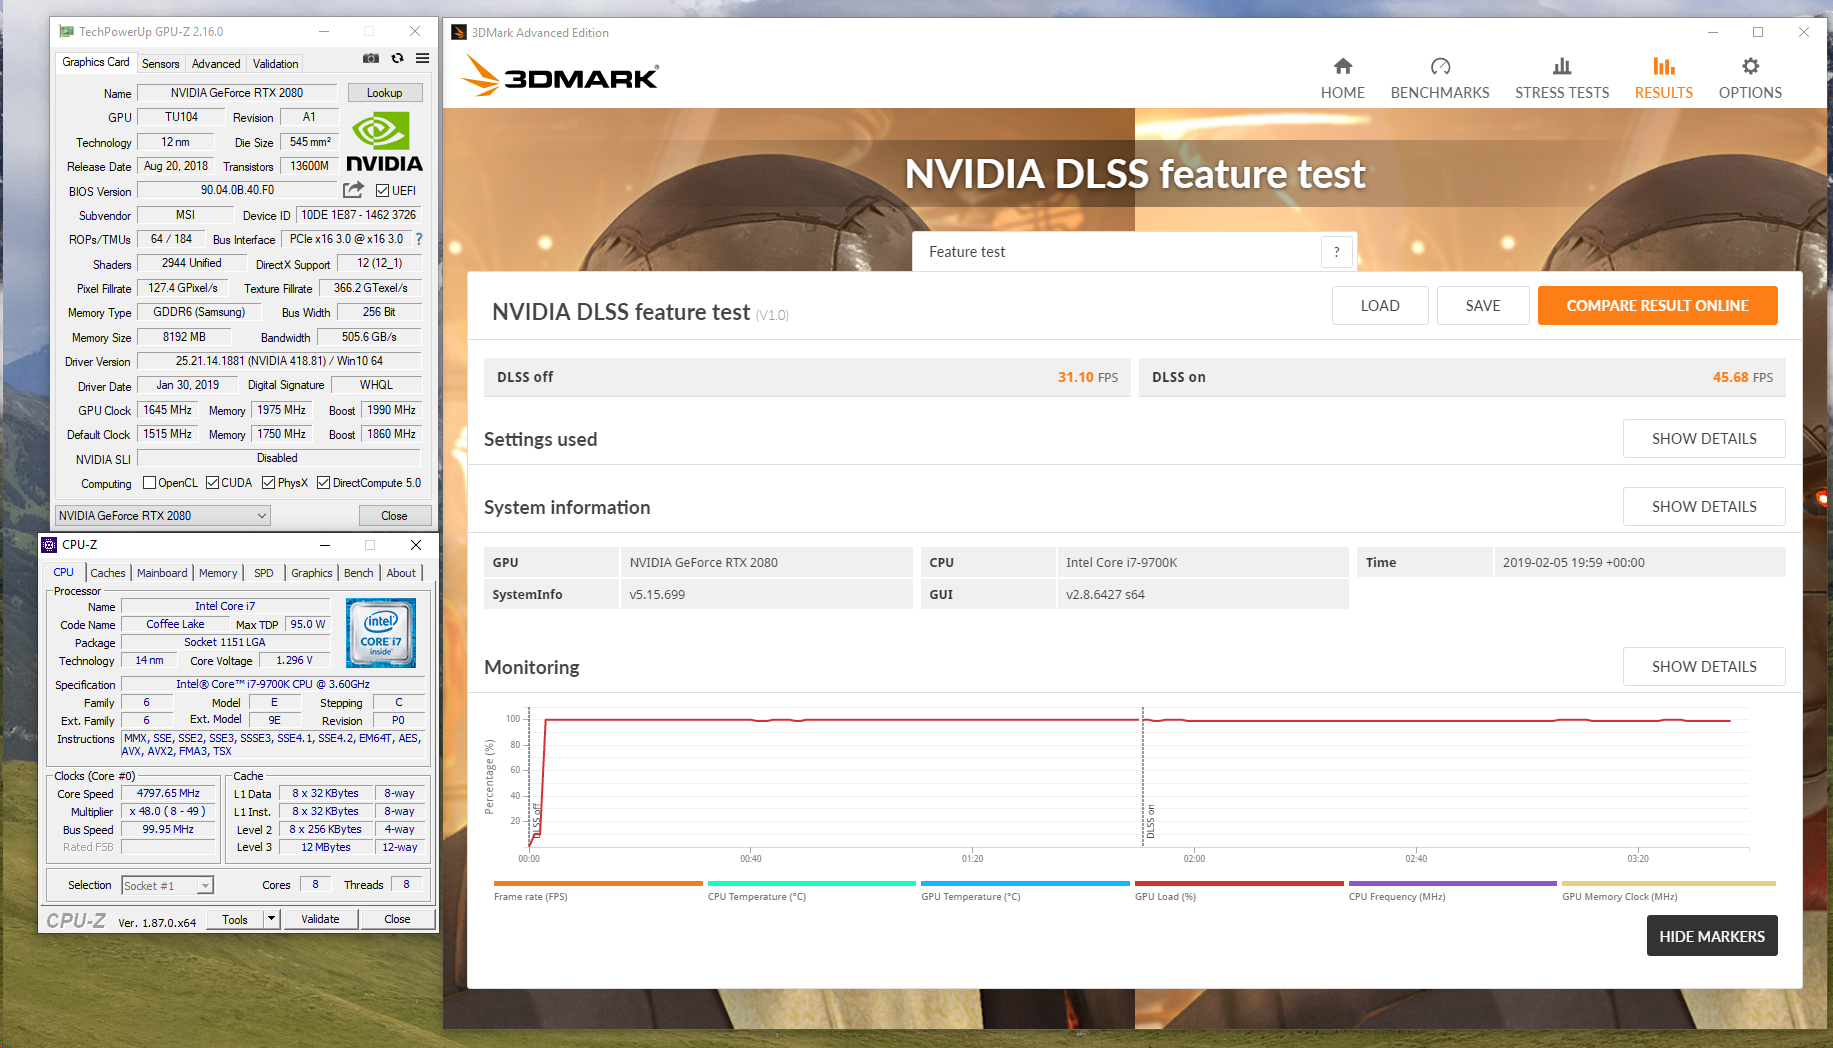 3DMark Adds NVIDIA DLSS Feature Performance Test to Port